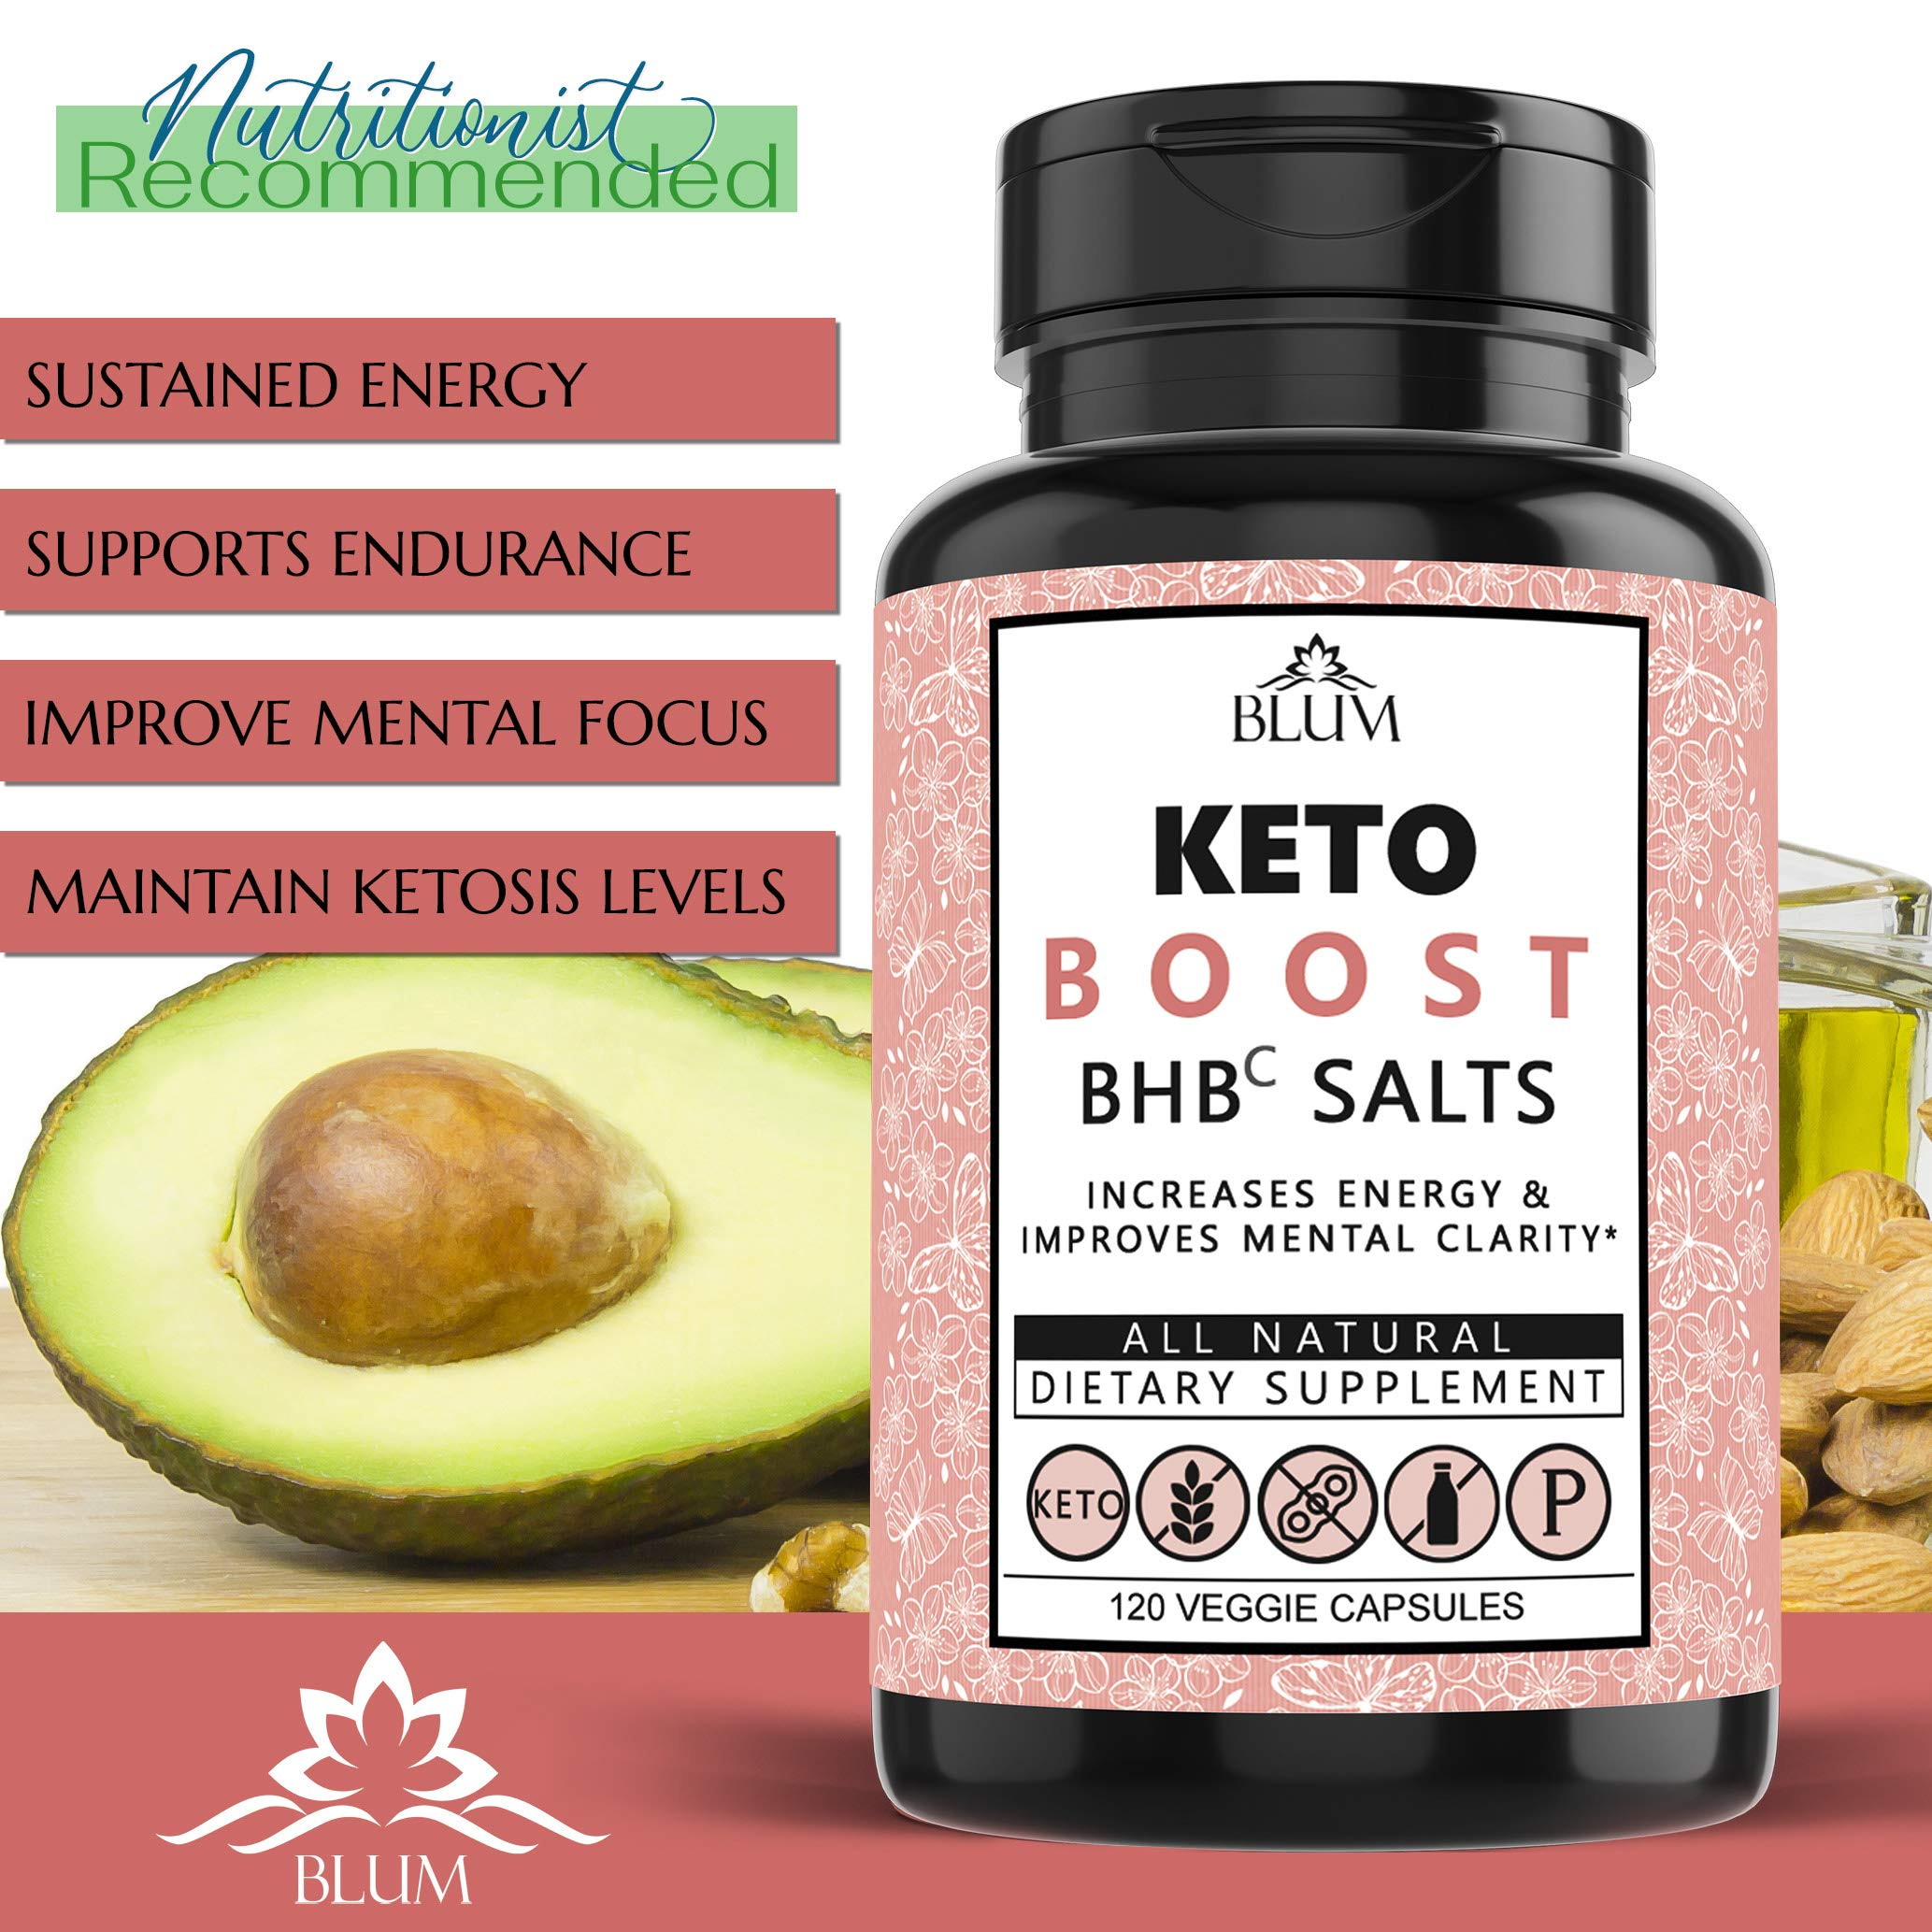 Keto Pills Weight Loss Supplements Keto Diet Pills for Ketosis | Advanced BHB Exogenous Ketones 800mg Capsules for Rapid Fat Burn, Suppress Appetite, Increase Metabolism, Energy and Mental Focus 120ct by Ovillow (Image #2)